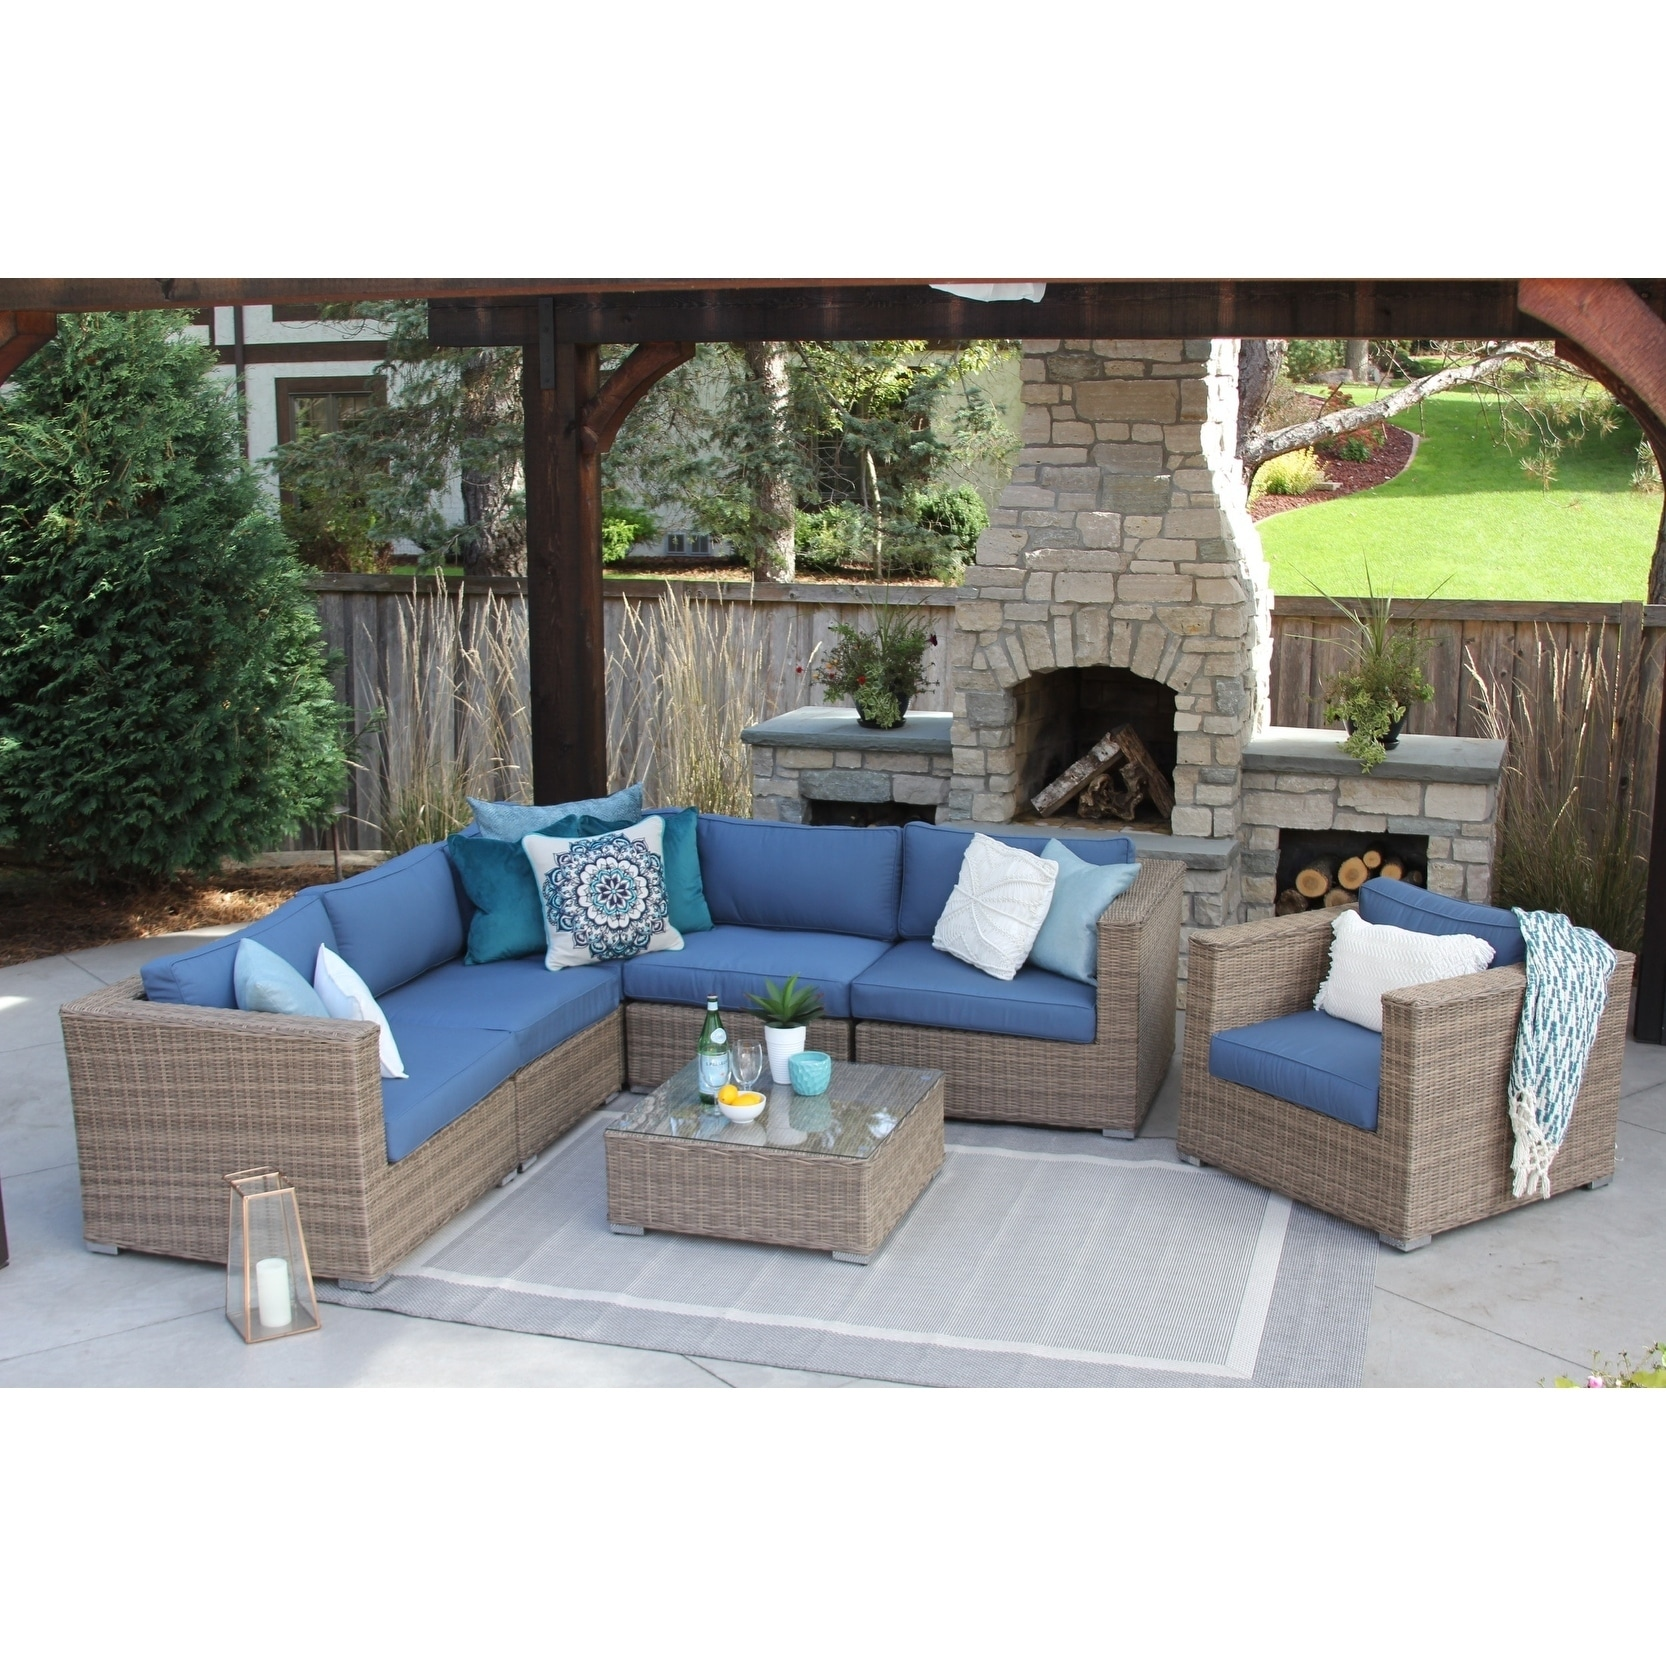 Shop Sunbrella Loring 7pc Patio Sectional Set - Free Shipping Today - Overstock - 21520379  sc 1 st  Overstock & Shop Sunbrella Loring 7pc Patio Sectional Set - Free Shipping Today ...